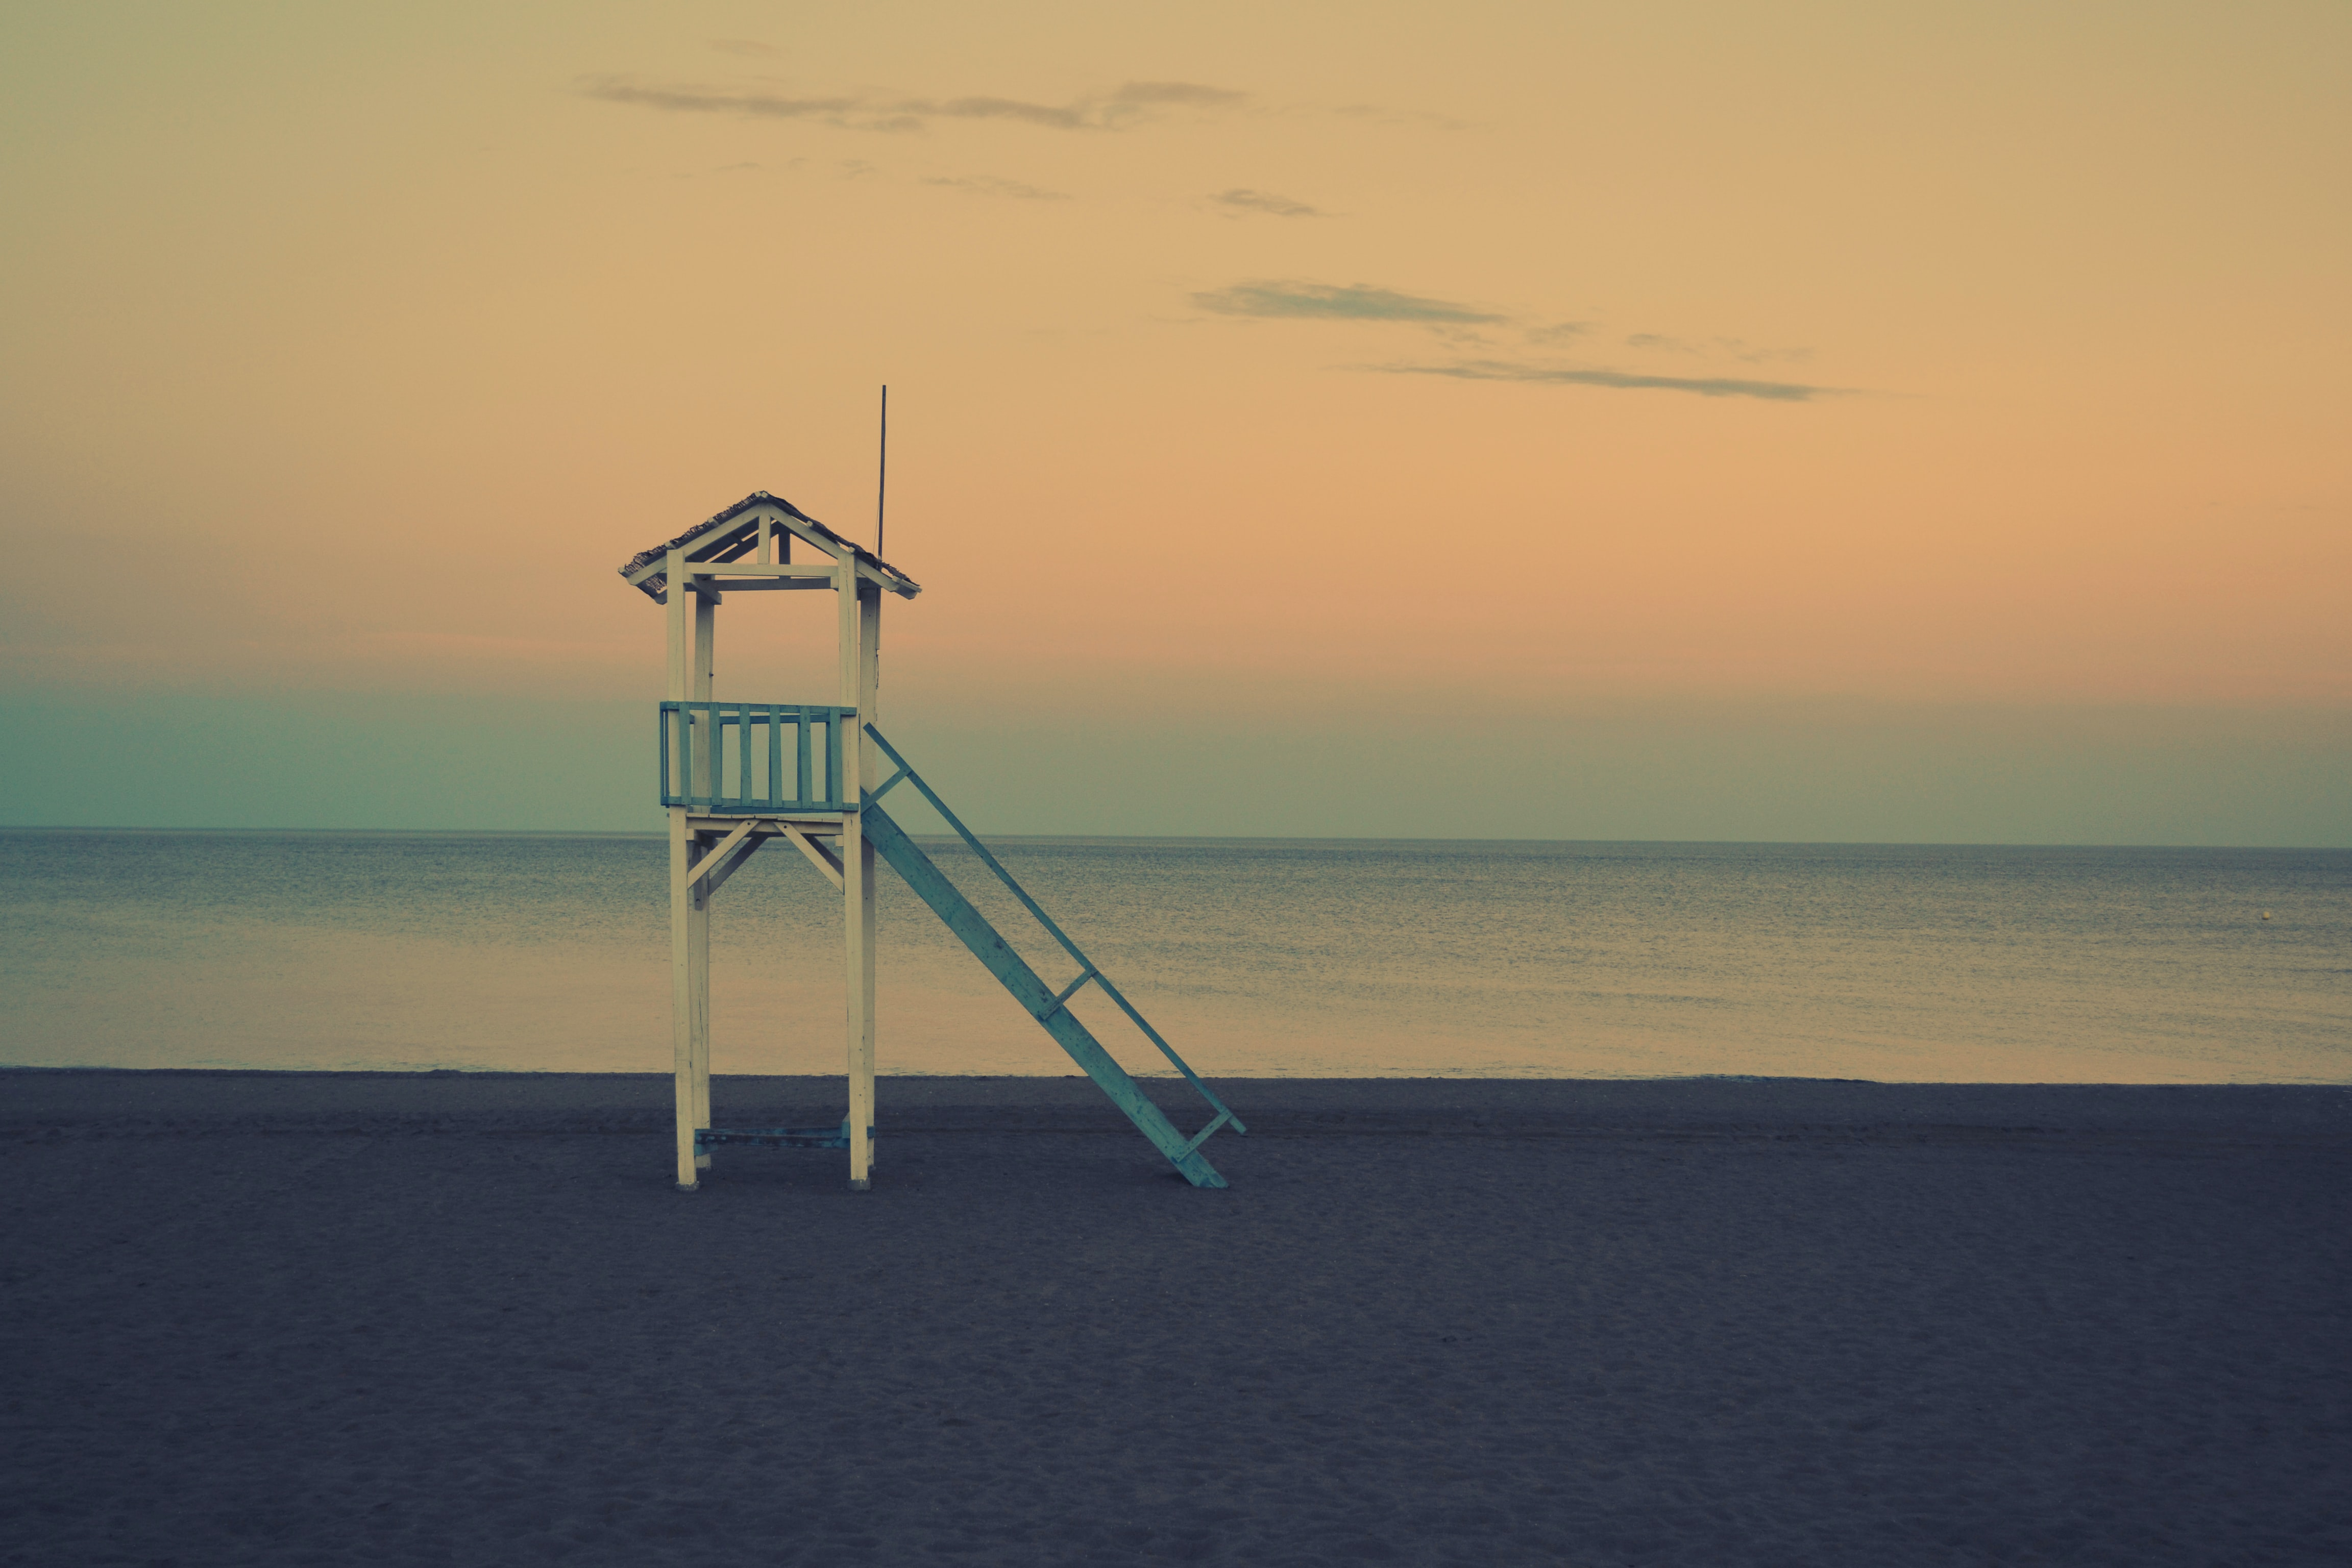 Serene view of a beach featuring the ocean and lifeguard watchtower